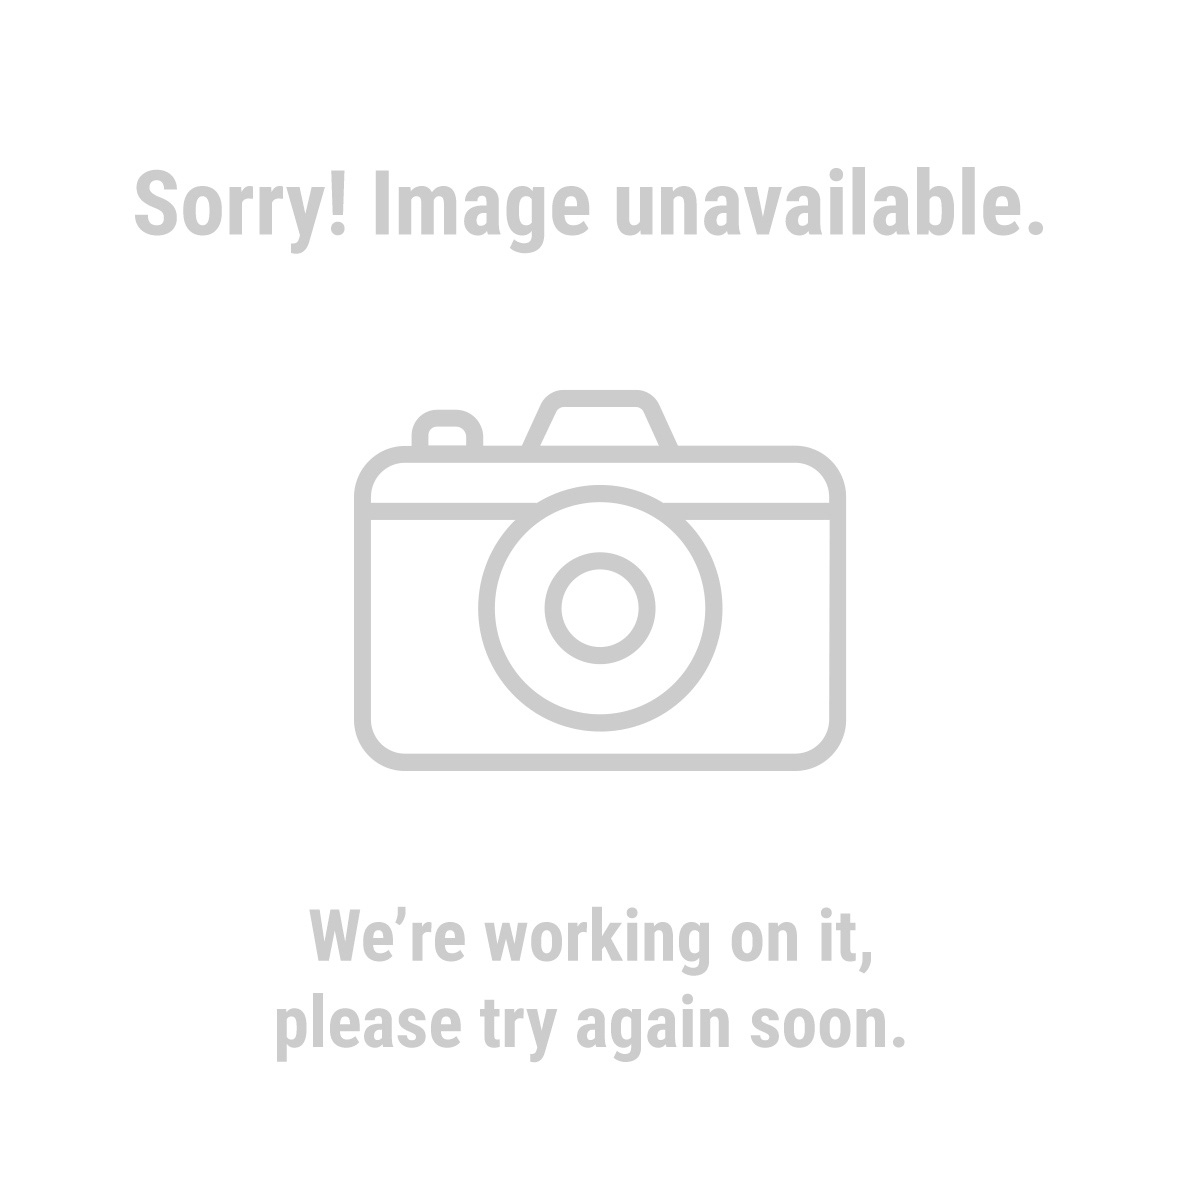 Central Pneumatic 61689 2-in-1 Flooring Nailer/Stapler